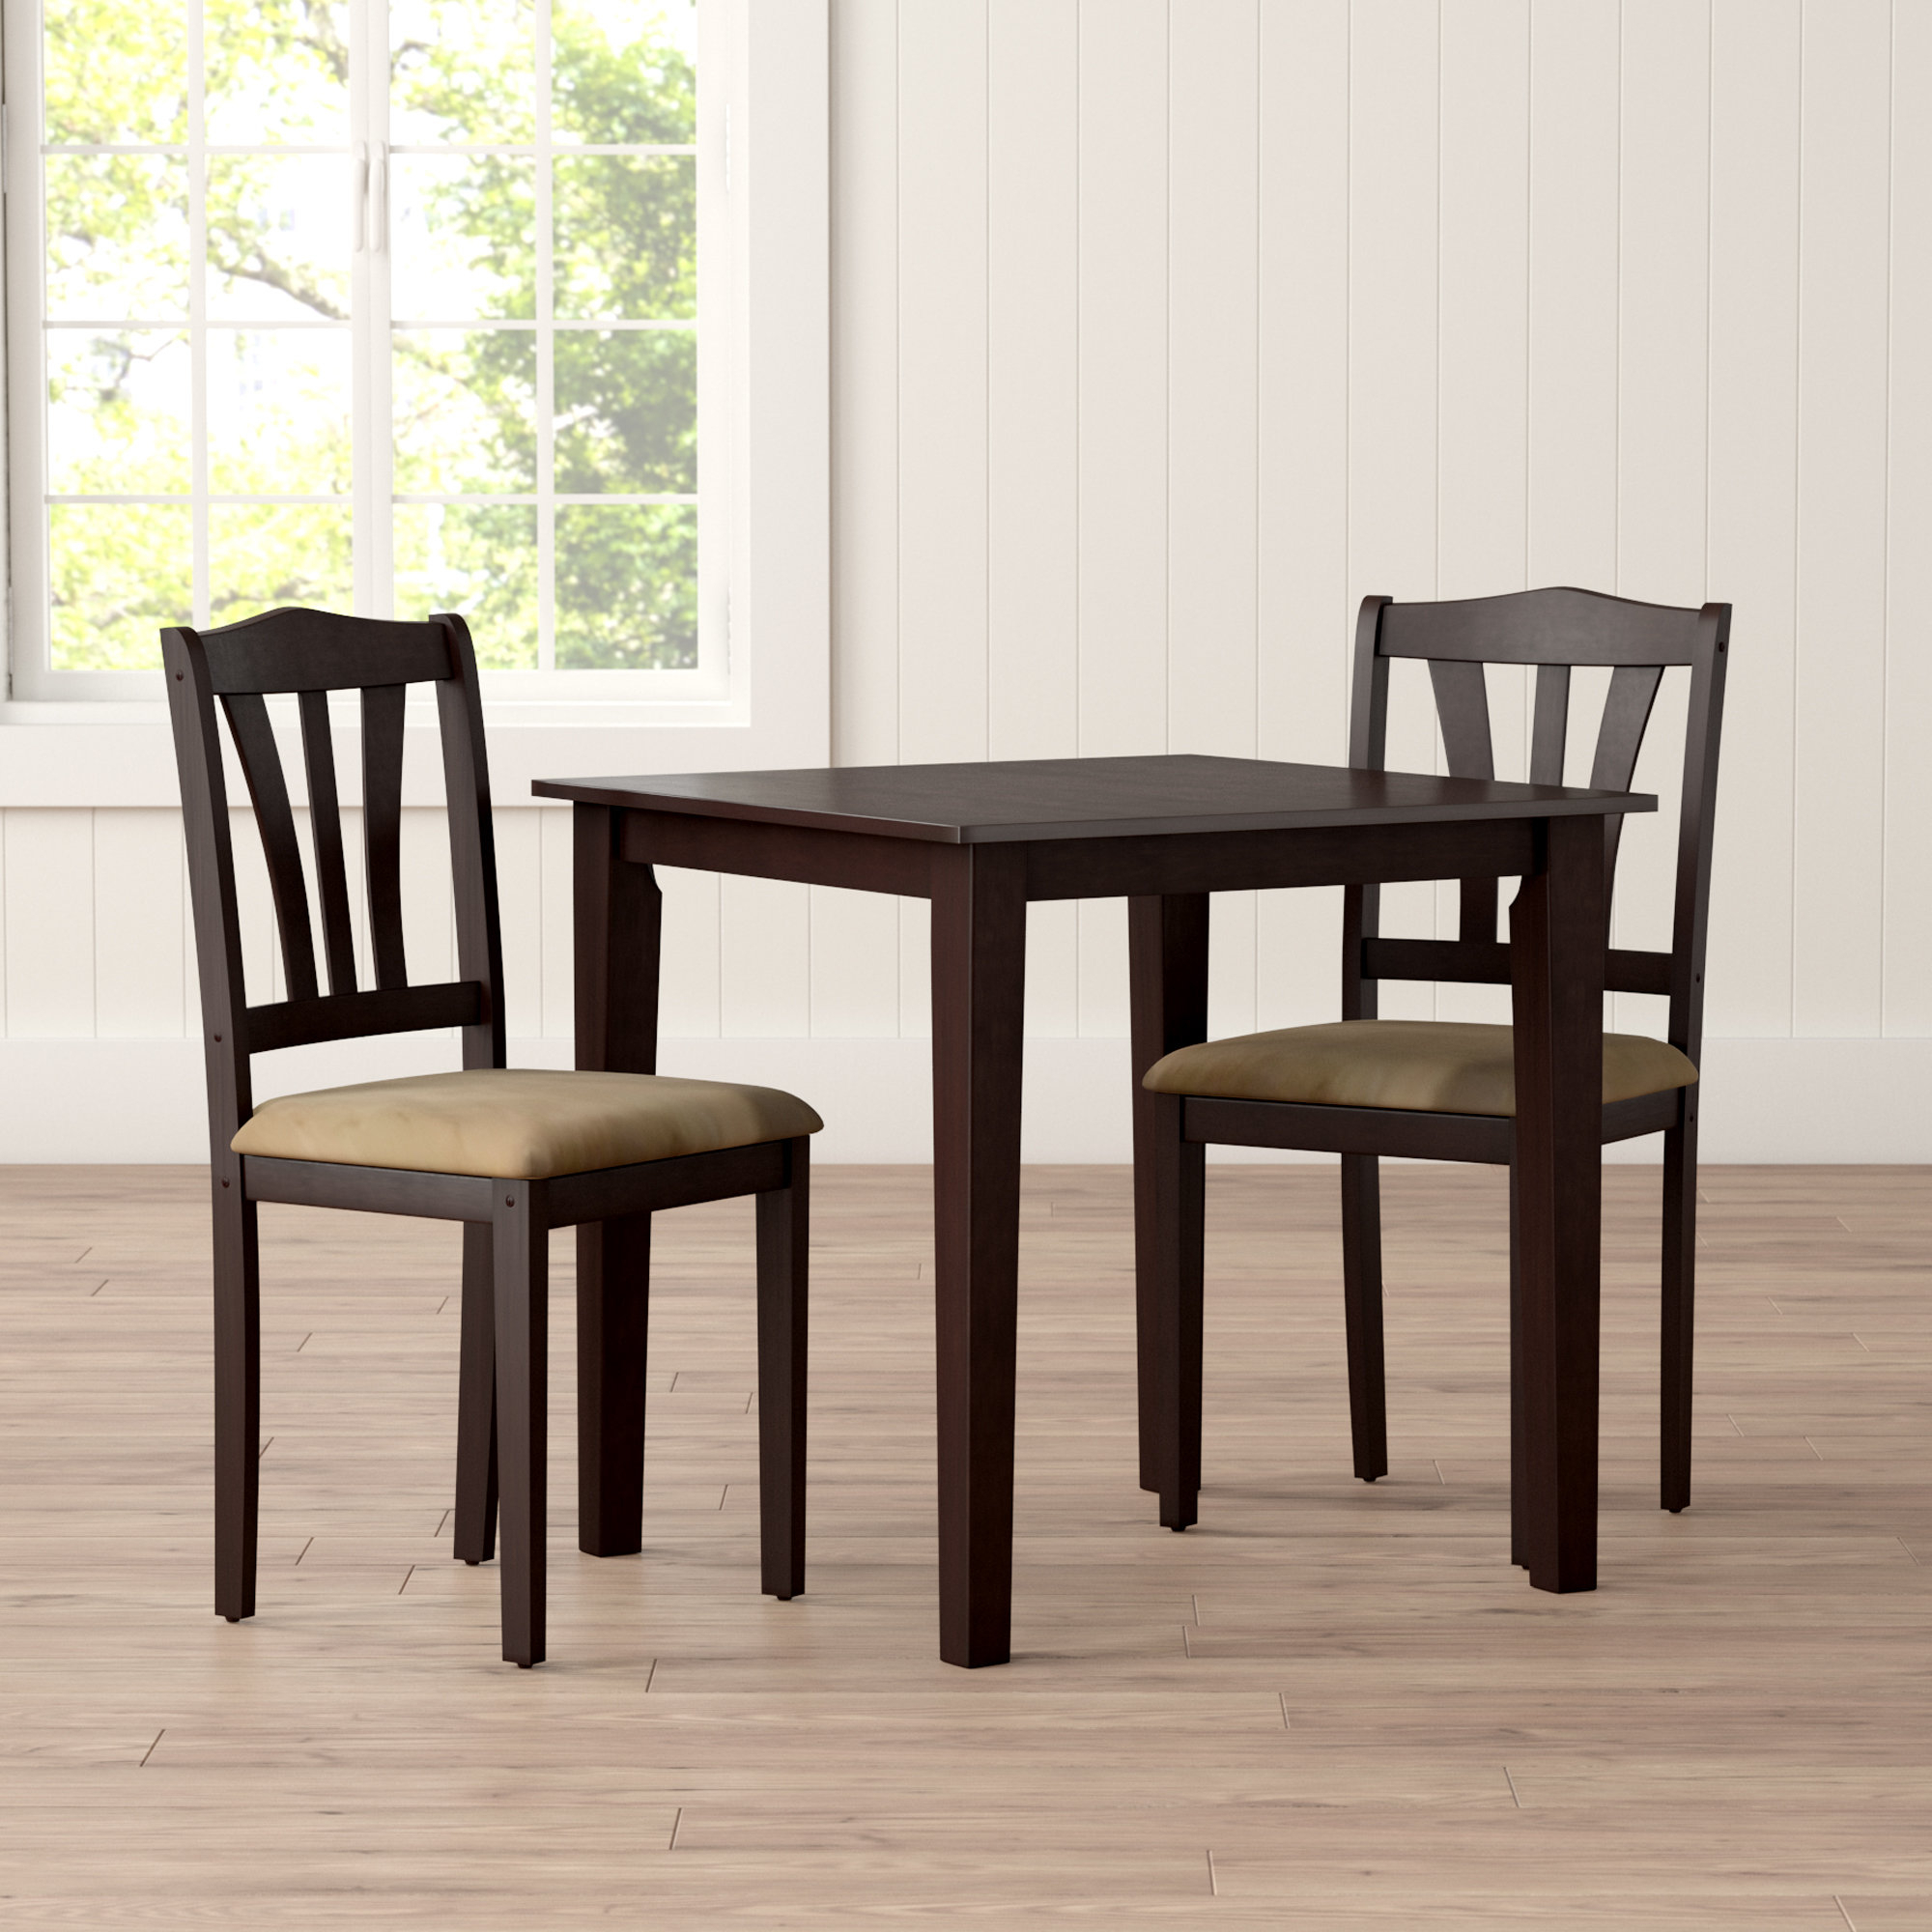 Baillie 3 Piece Dining Sets Throughout Best And Newest Dinah 3 Piece Dining Set (Gallery 11 of 20)